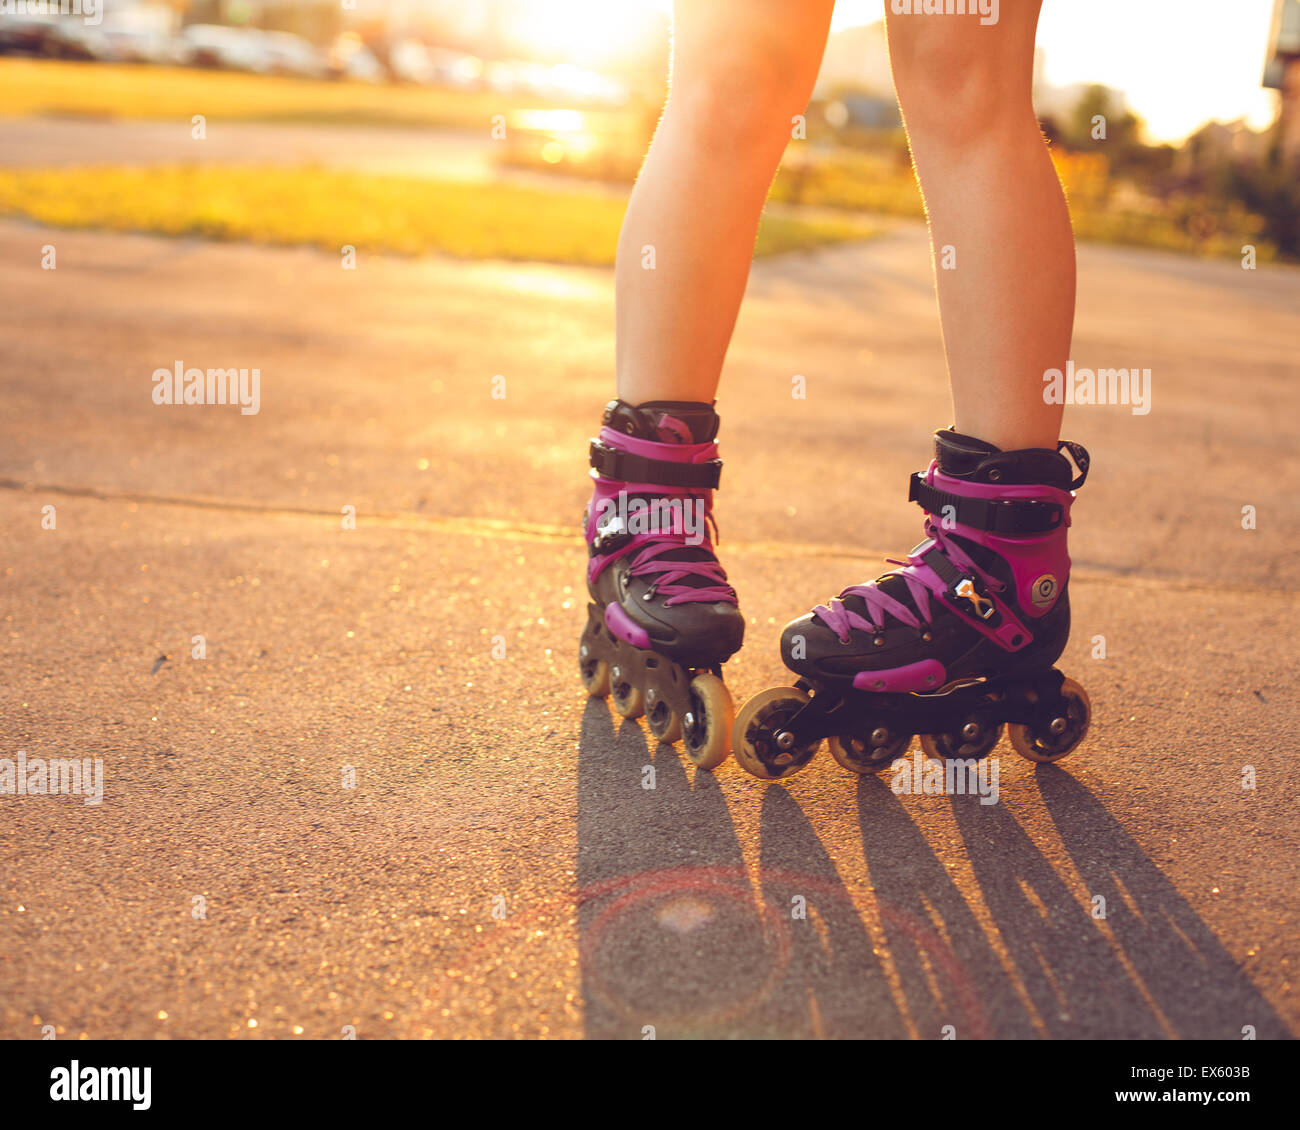 Close up on roller skate shoes Photo Stock